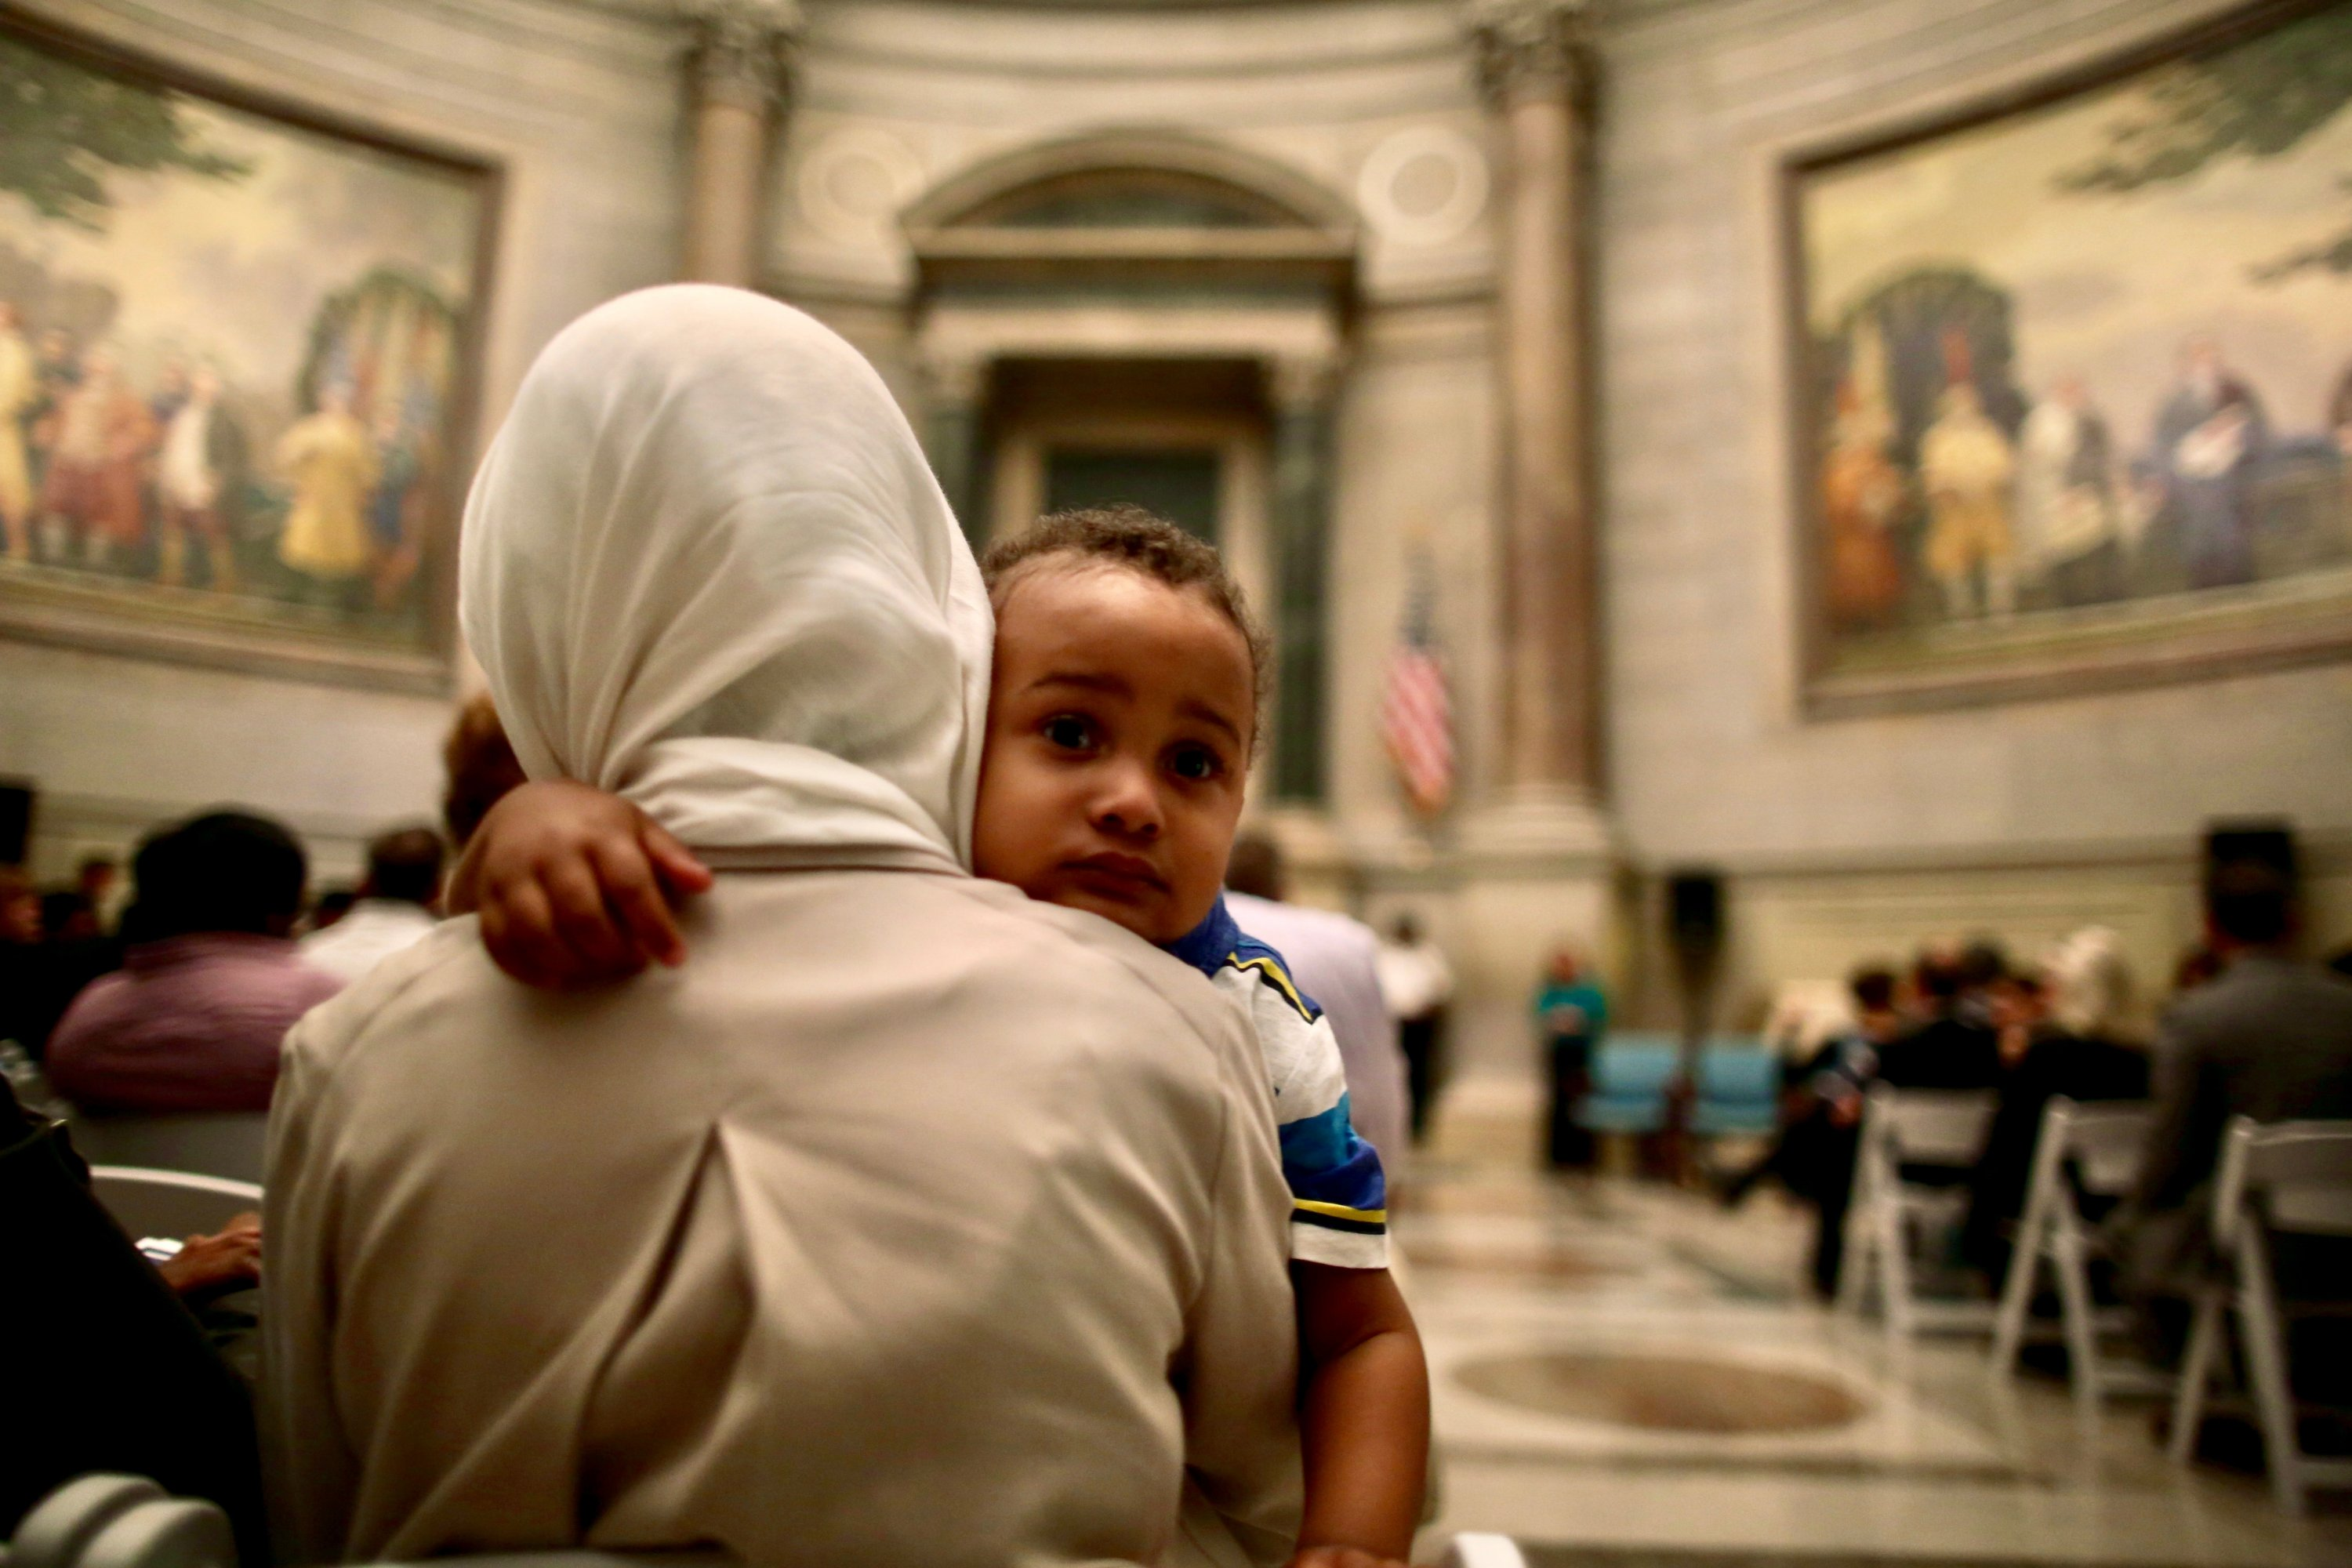 Photographs of Immigrants Becoming U.S. Citizens: A mother holds her child while attending a naturalization service at the National Archives.